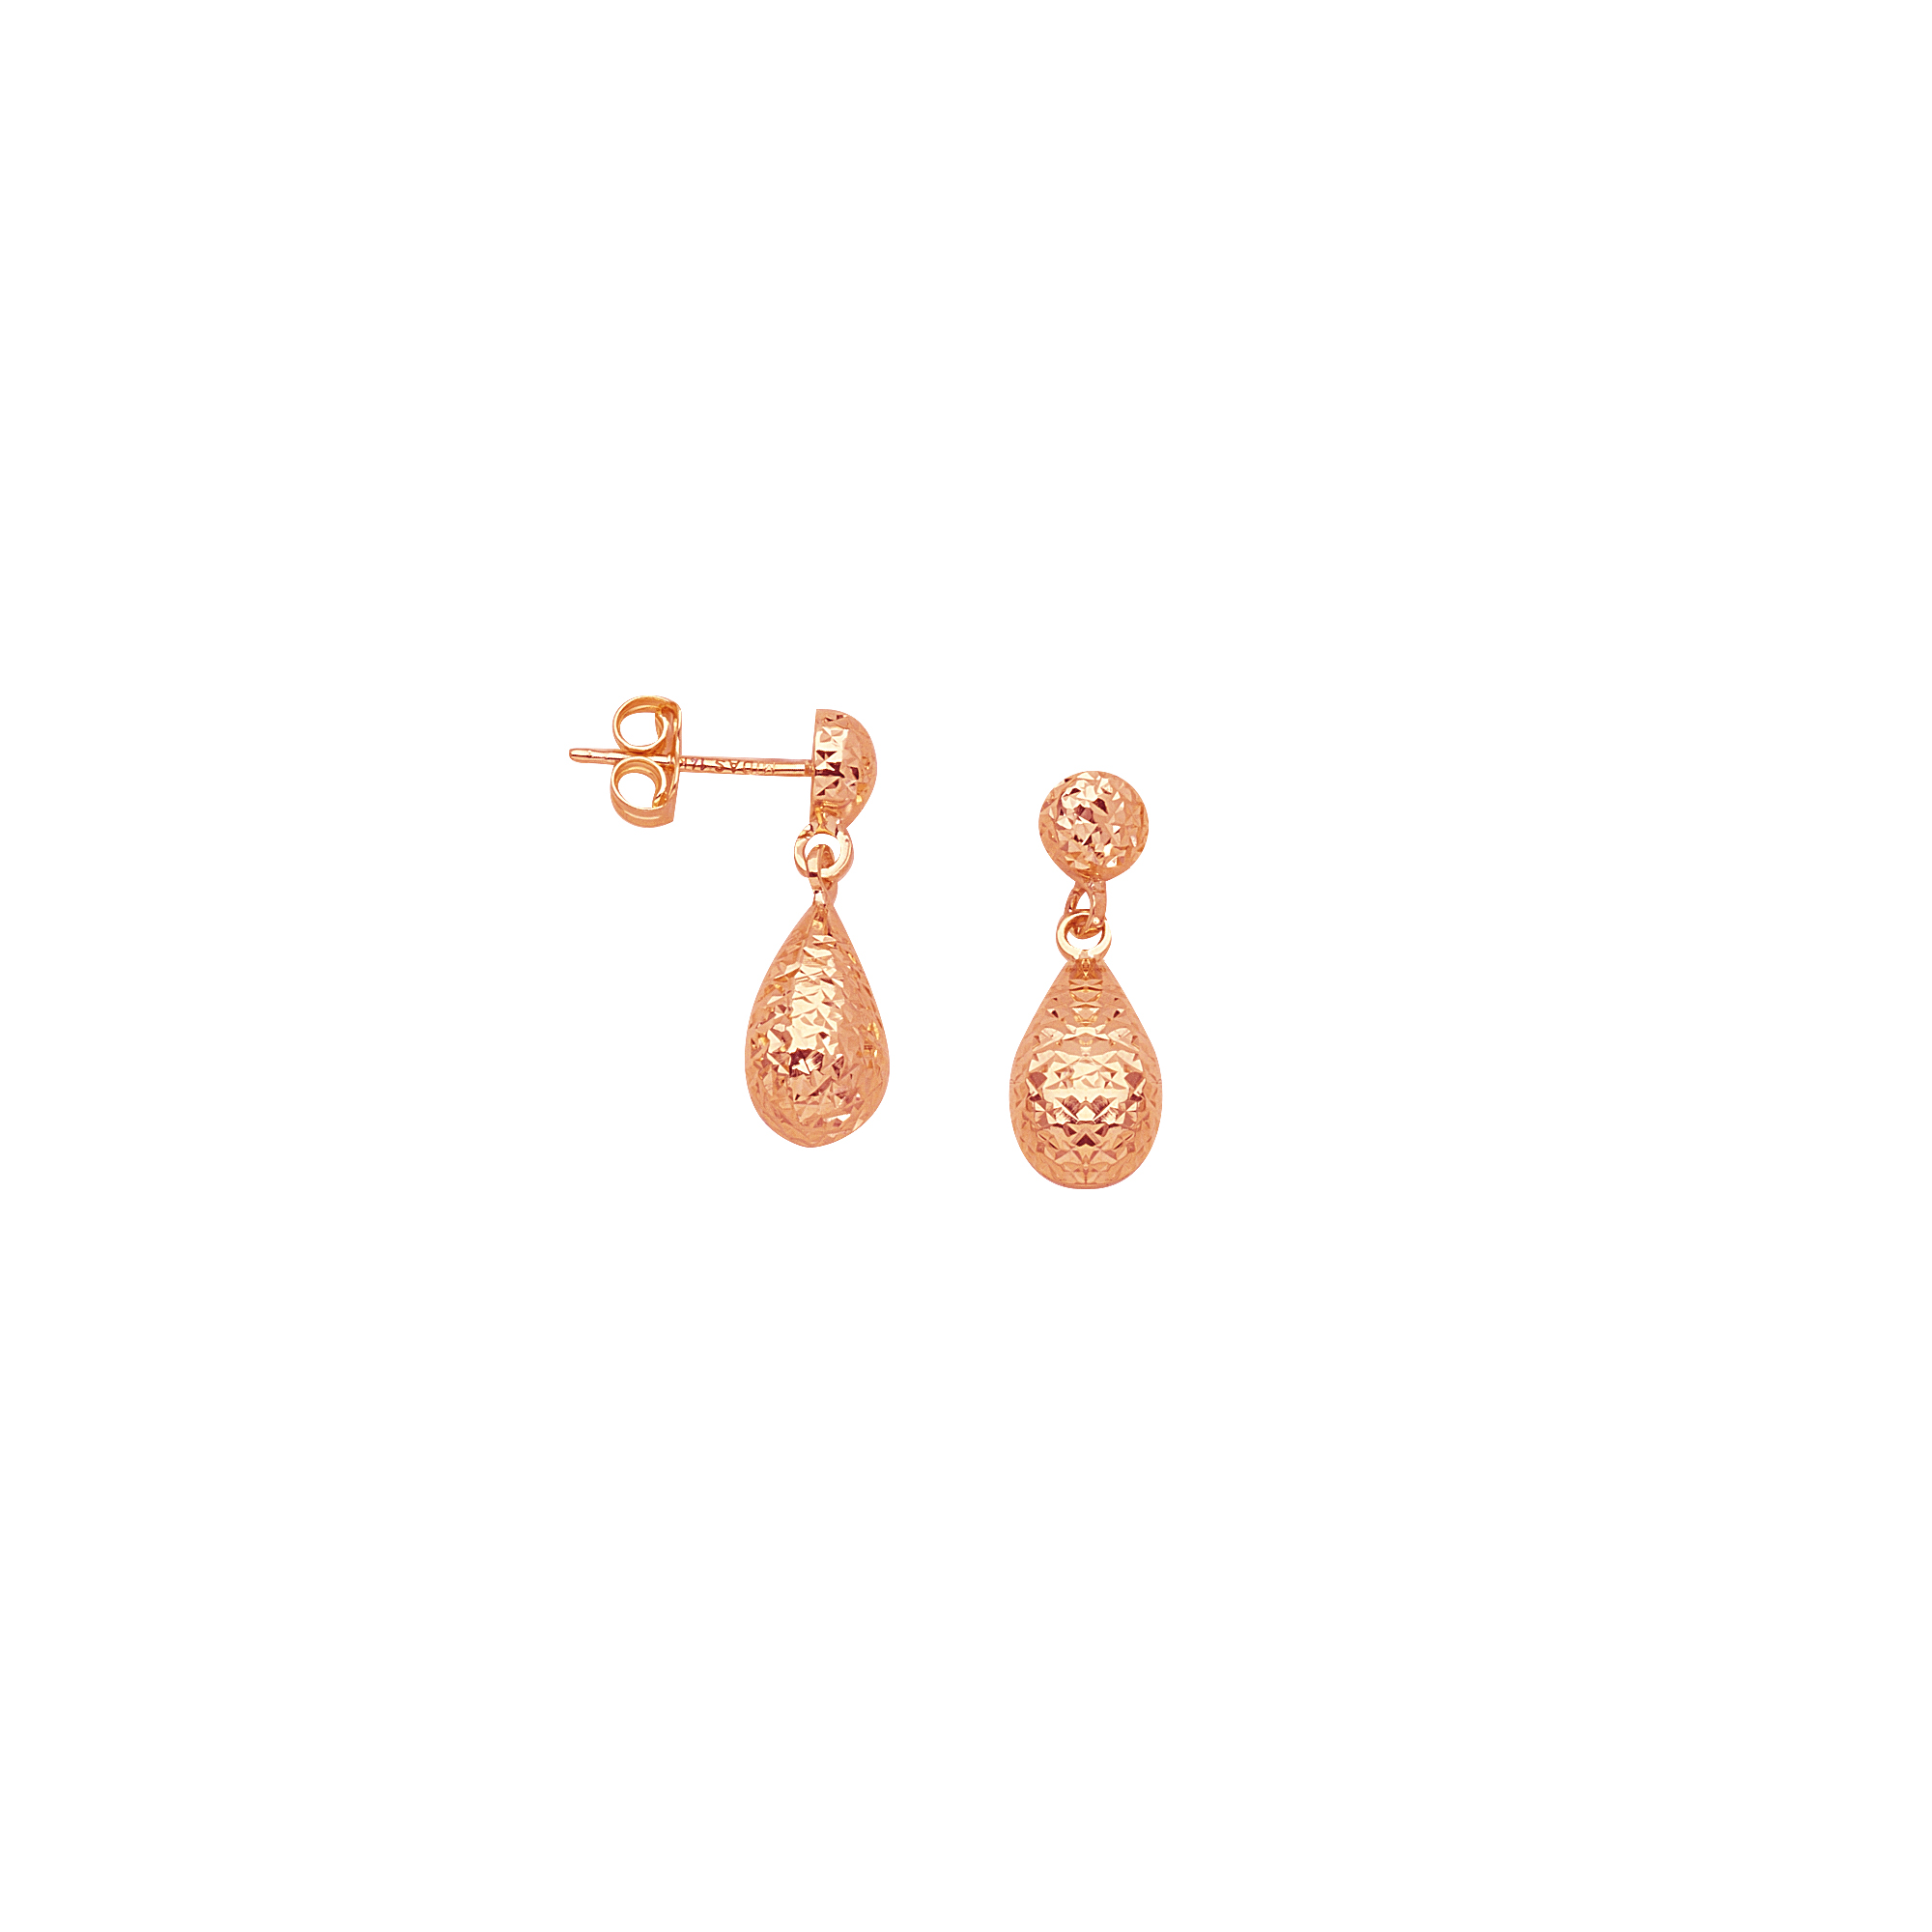 Tear Drop Earrings, 14Kt Gold  Post Dangle Tear Drop Earring